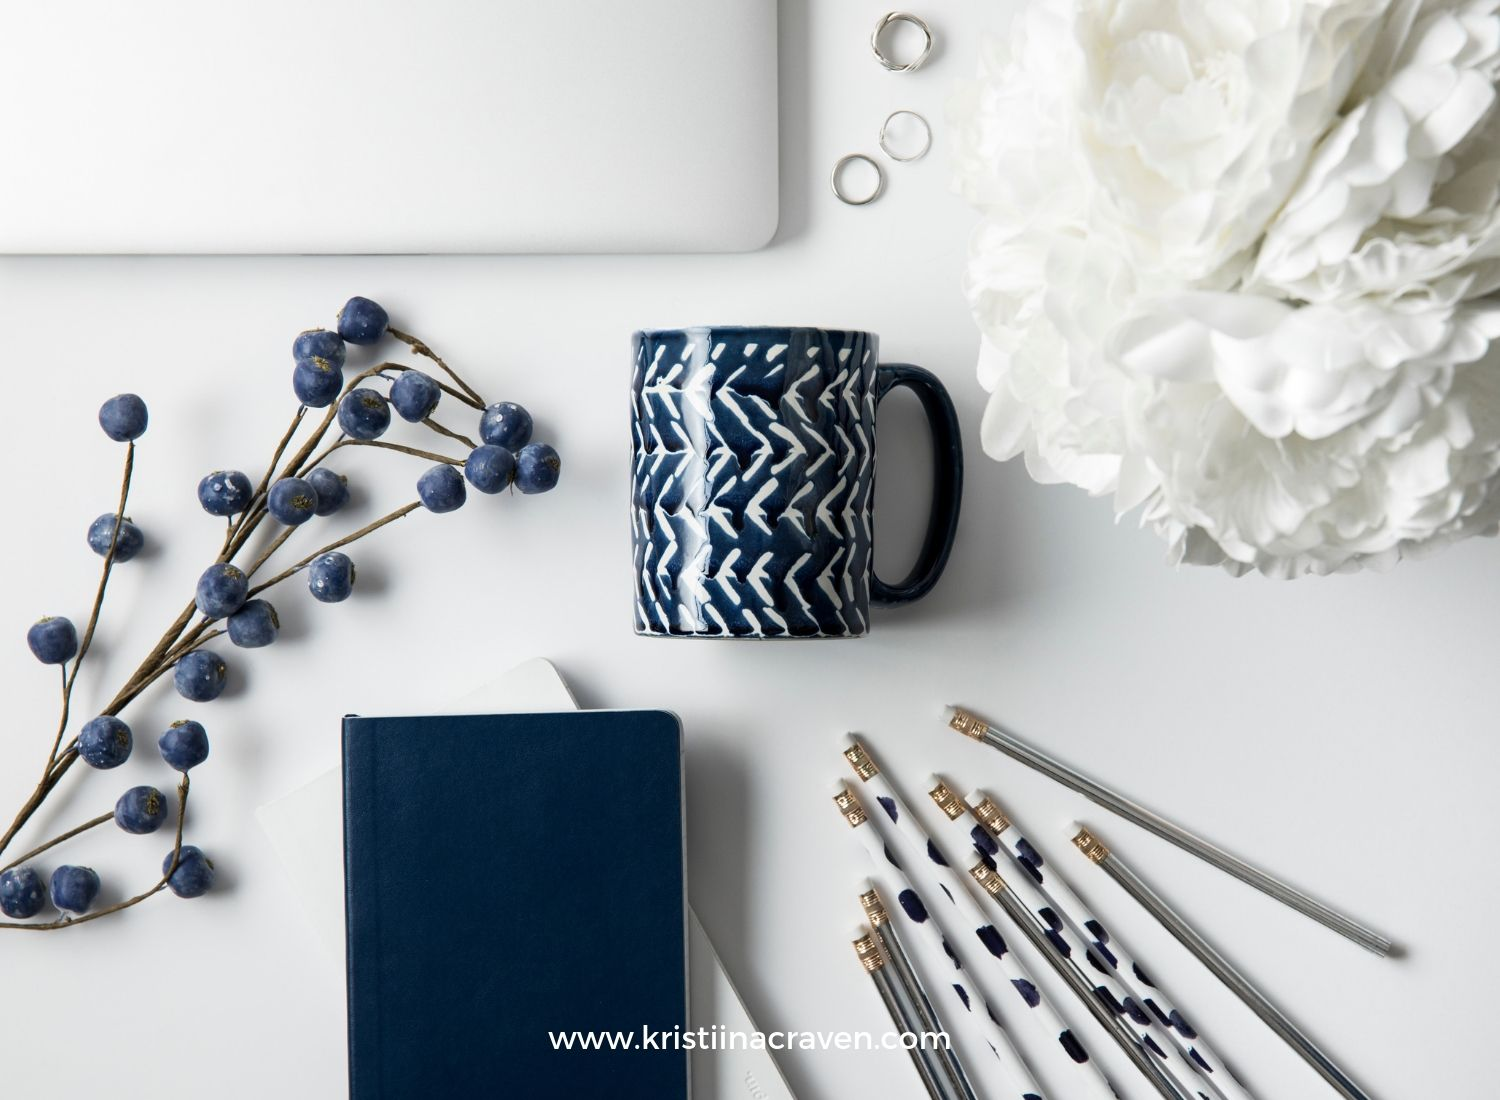 Learn how to take your own flat lay photos for better Pinterest images. Leverage your blog with great photography on Pinterest.